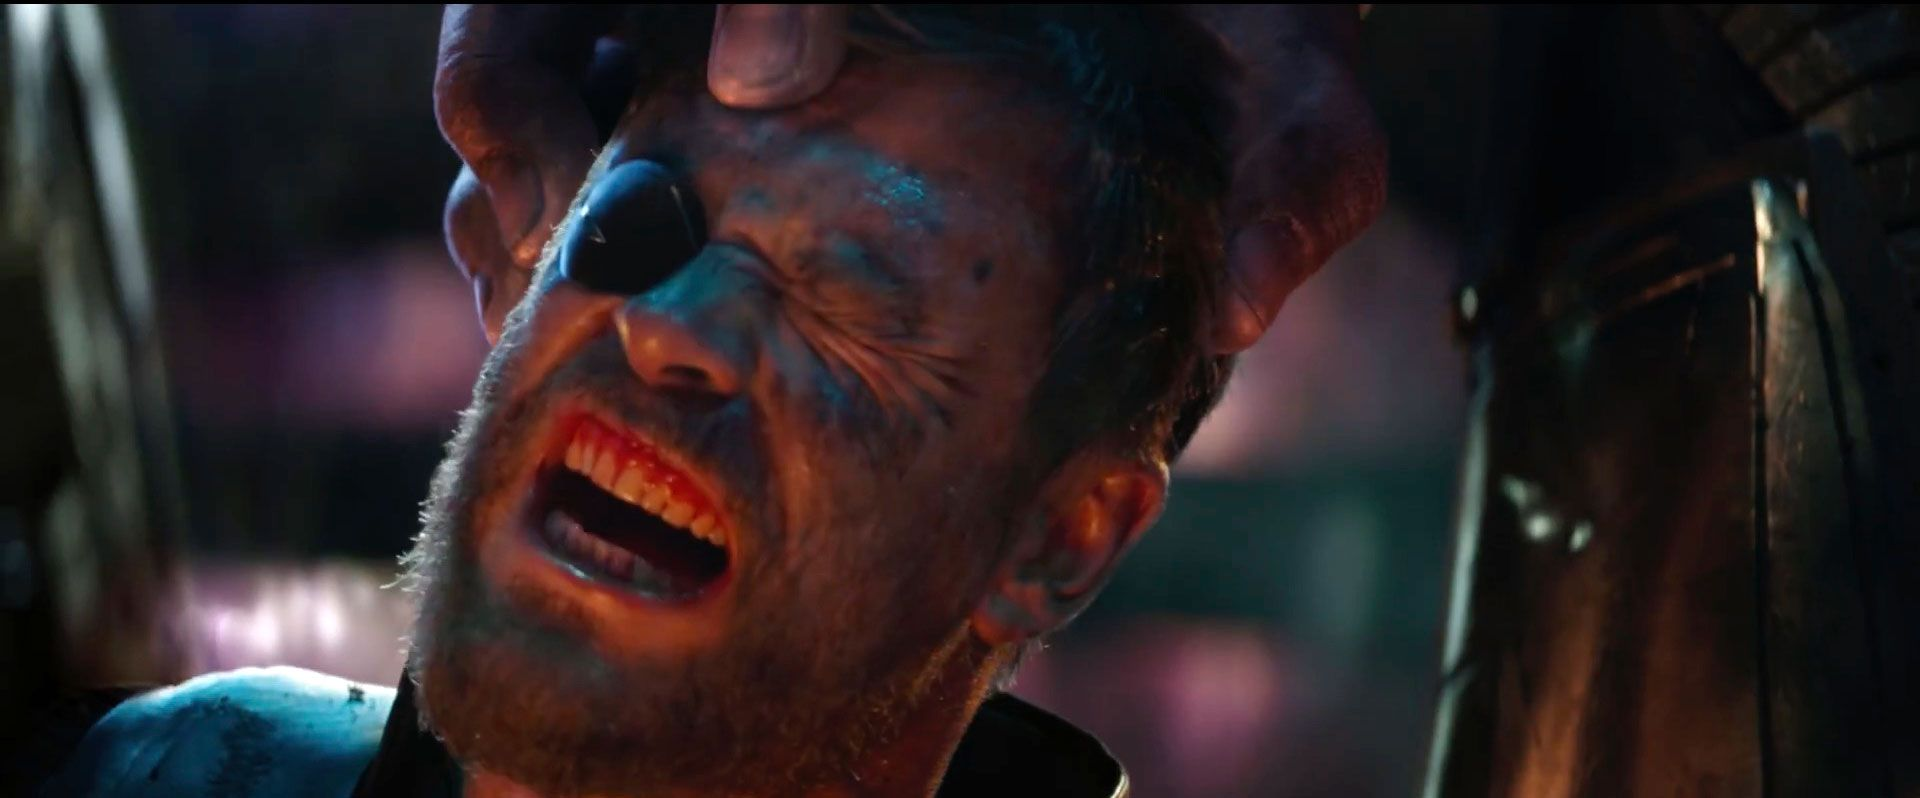 Who exactly are Avengers: Infinity War's new villains?